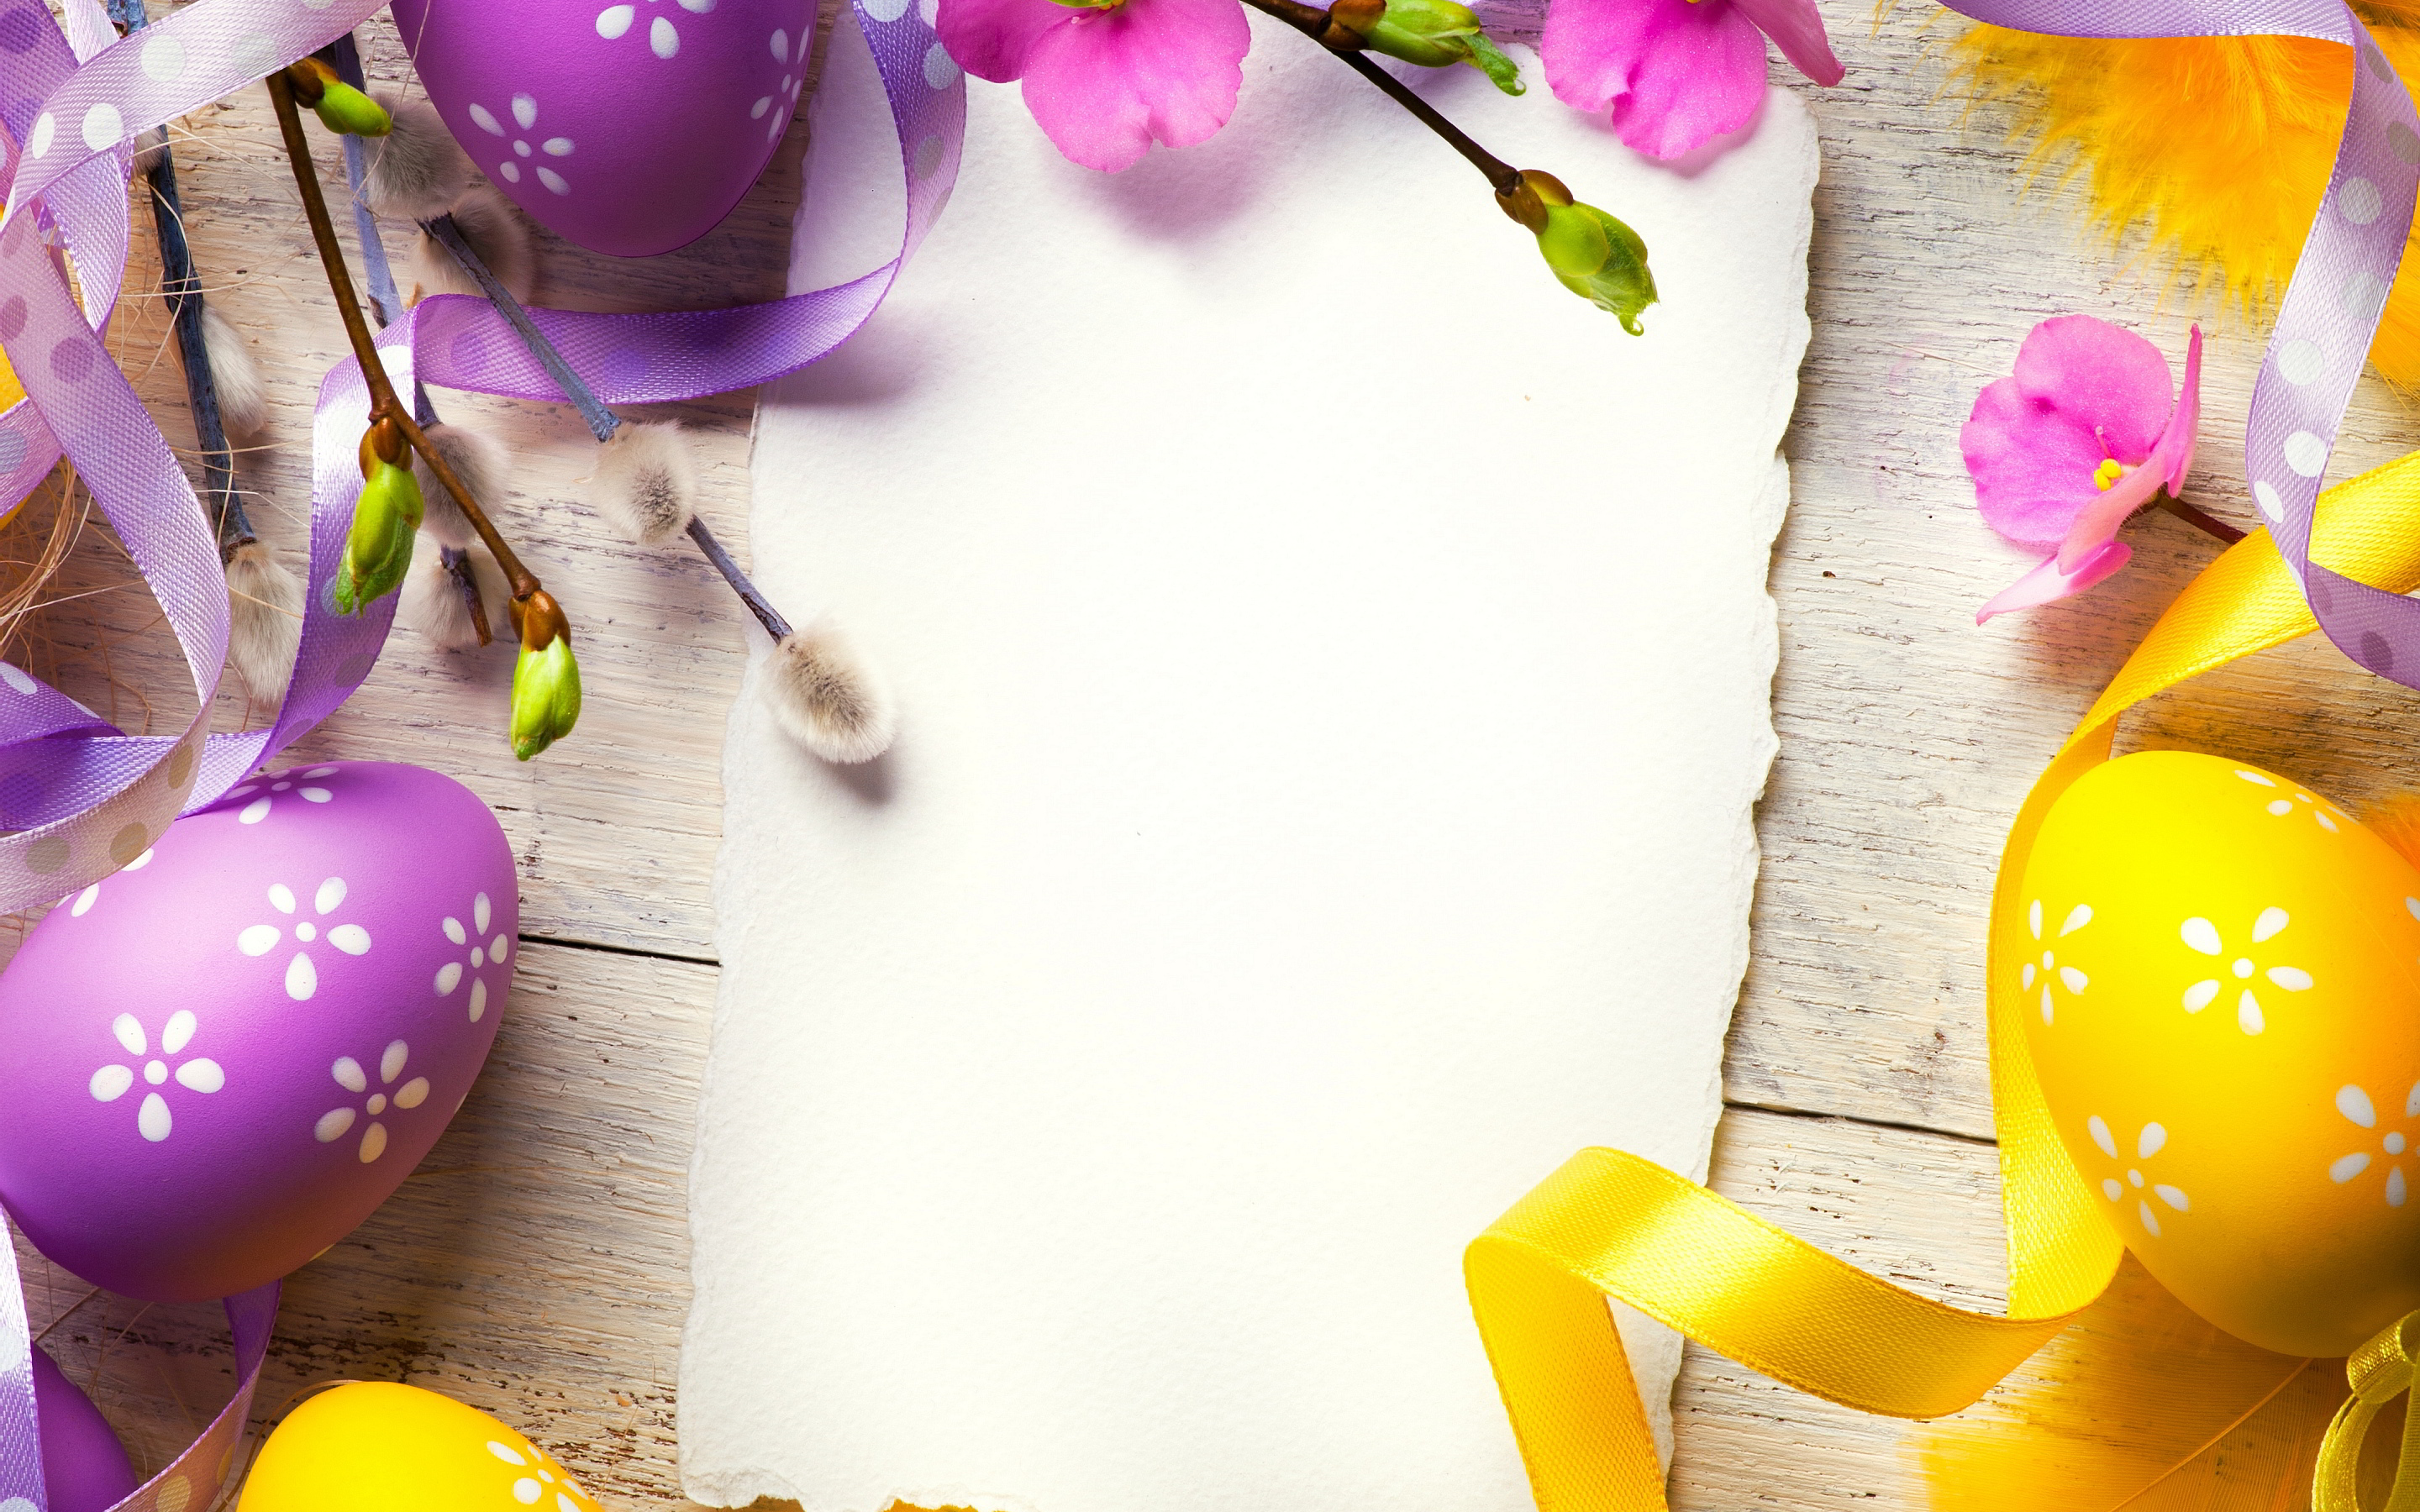 Easter pictures eggs background hd desktop wallpapers 4k hd - Wallpaper images ...